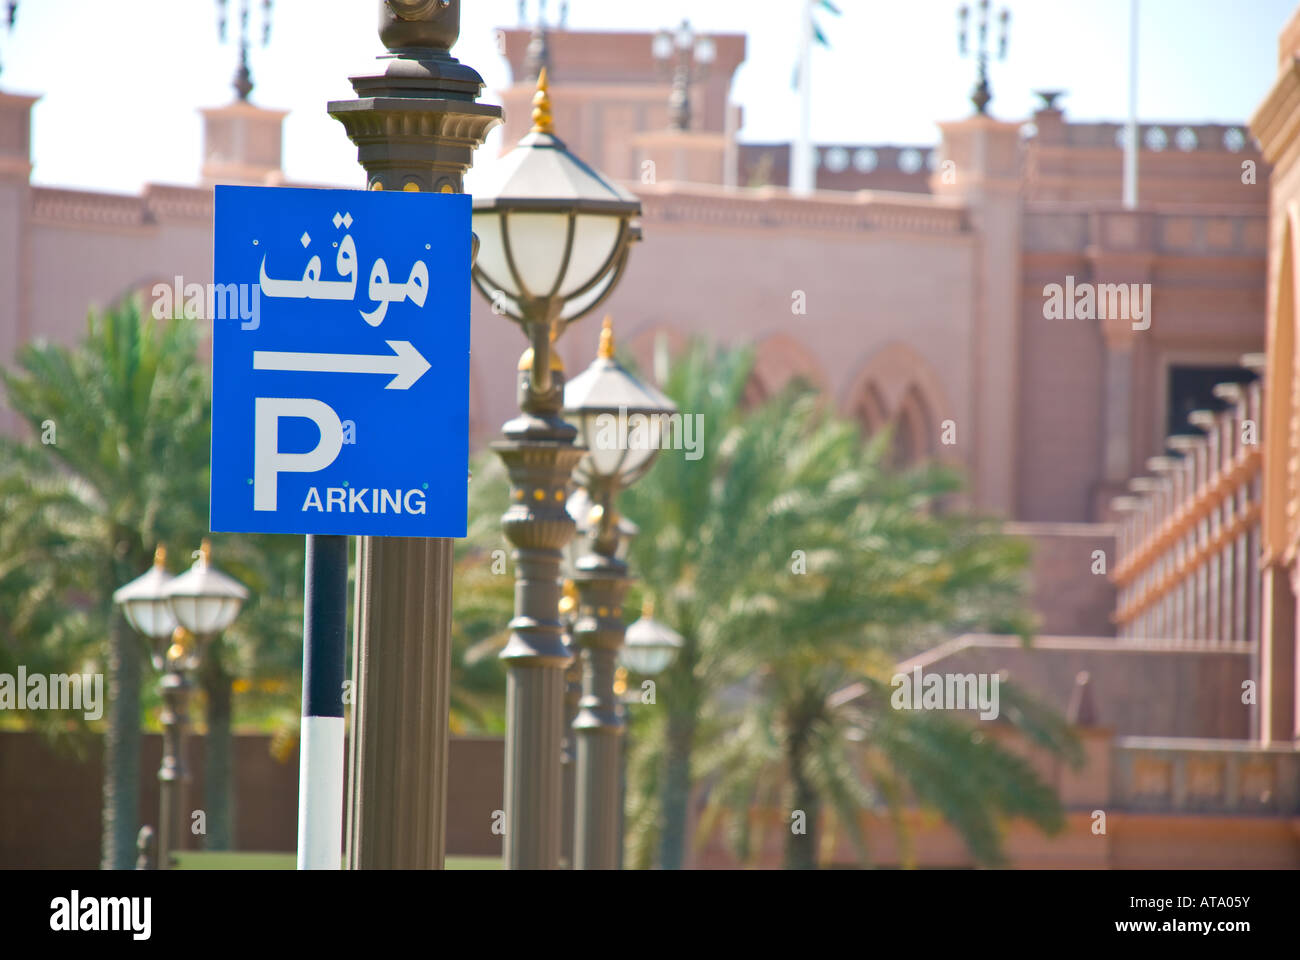 Arabic Parking Sign at the Emirates Palace Hotel - Stock Image